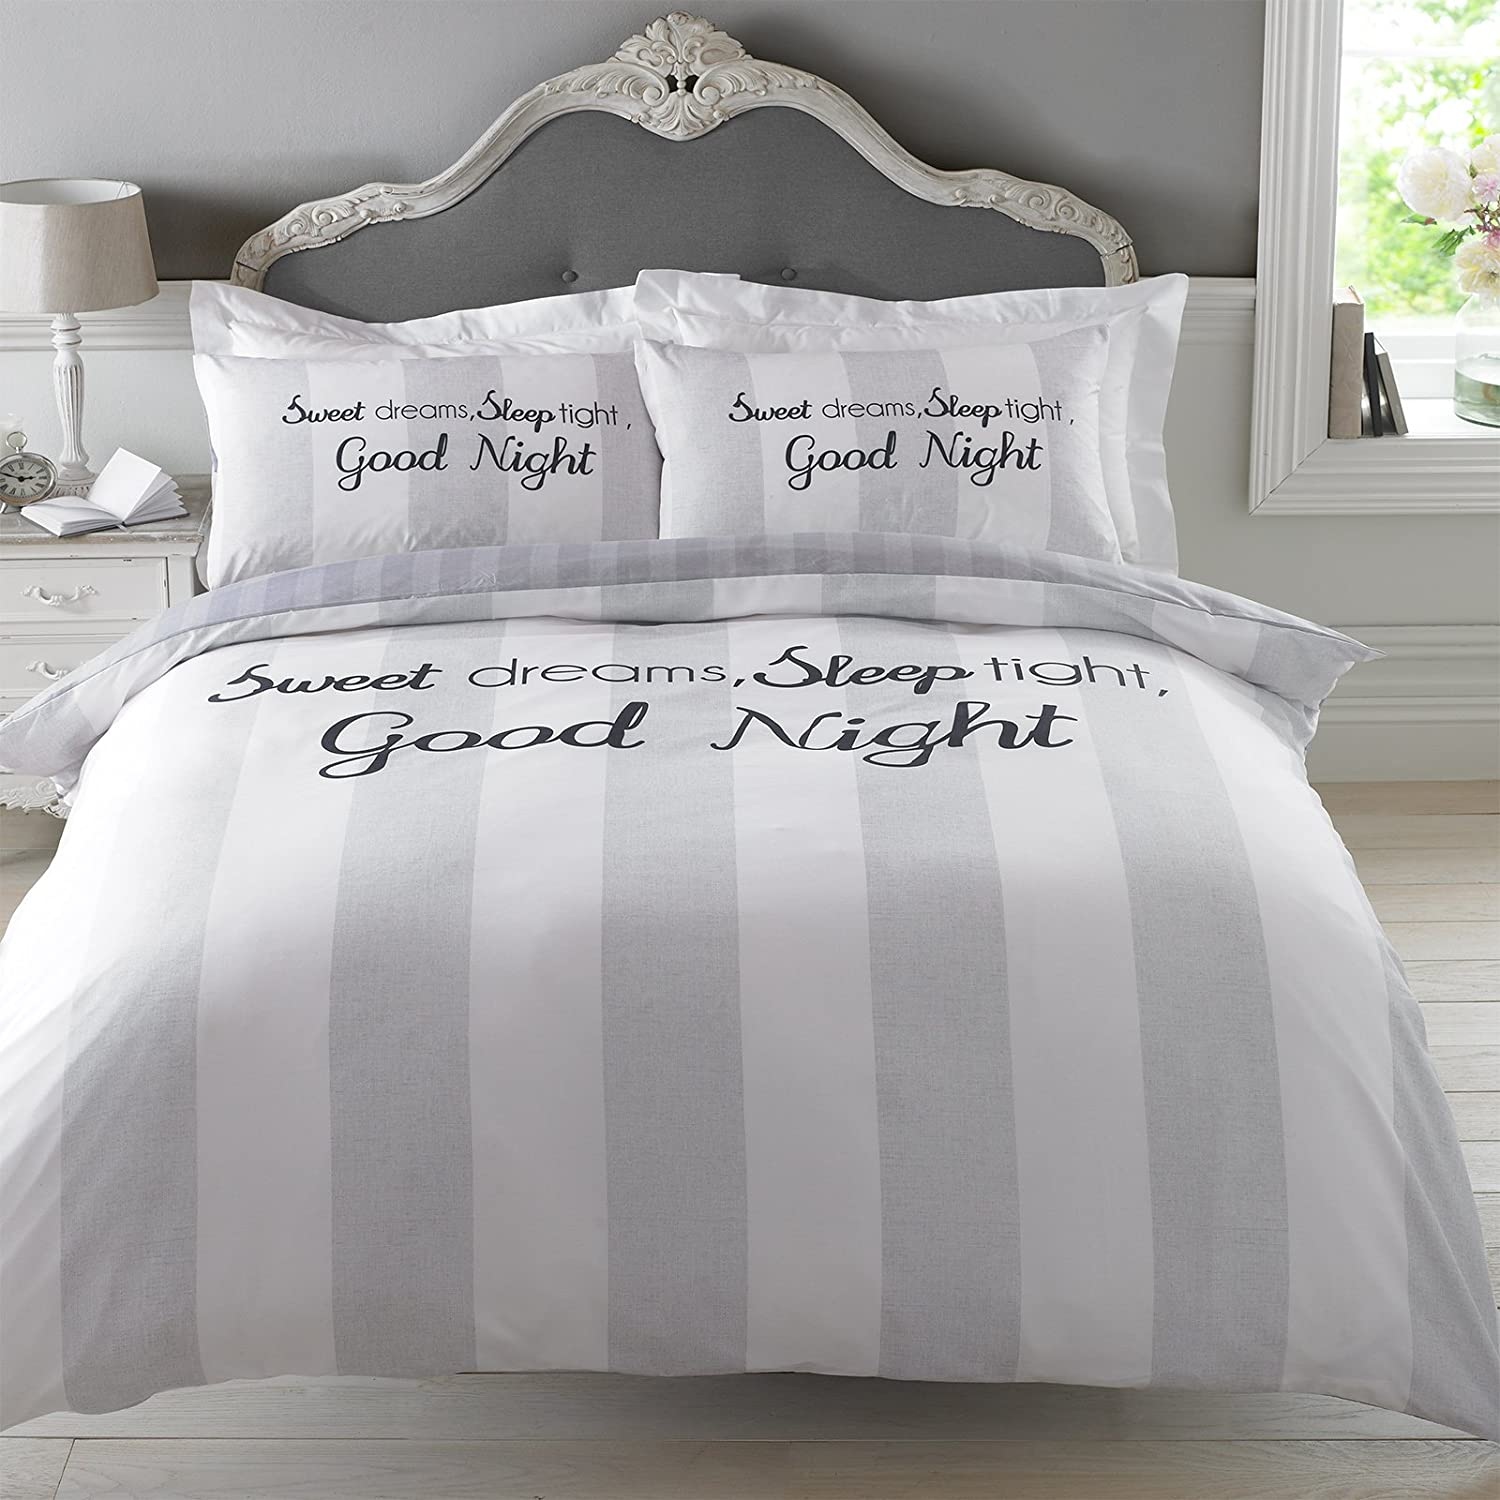 set home pillowcase dreamscene amazon dp gray kitchen dreams bedding sweet bed grey double with uk co cover duvet